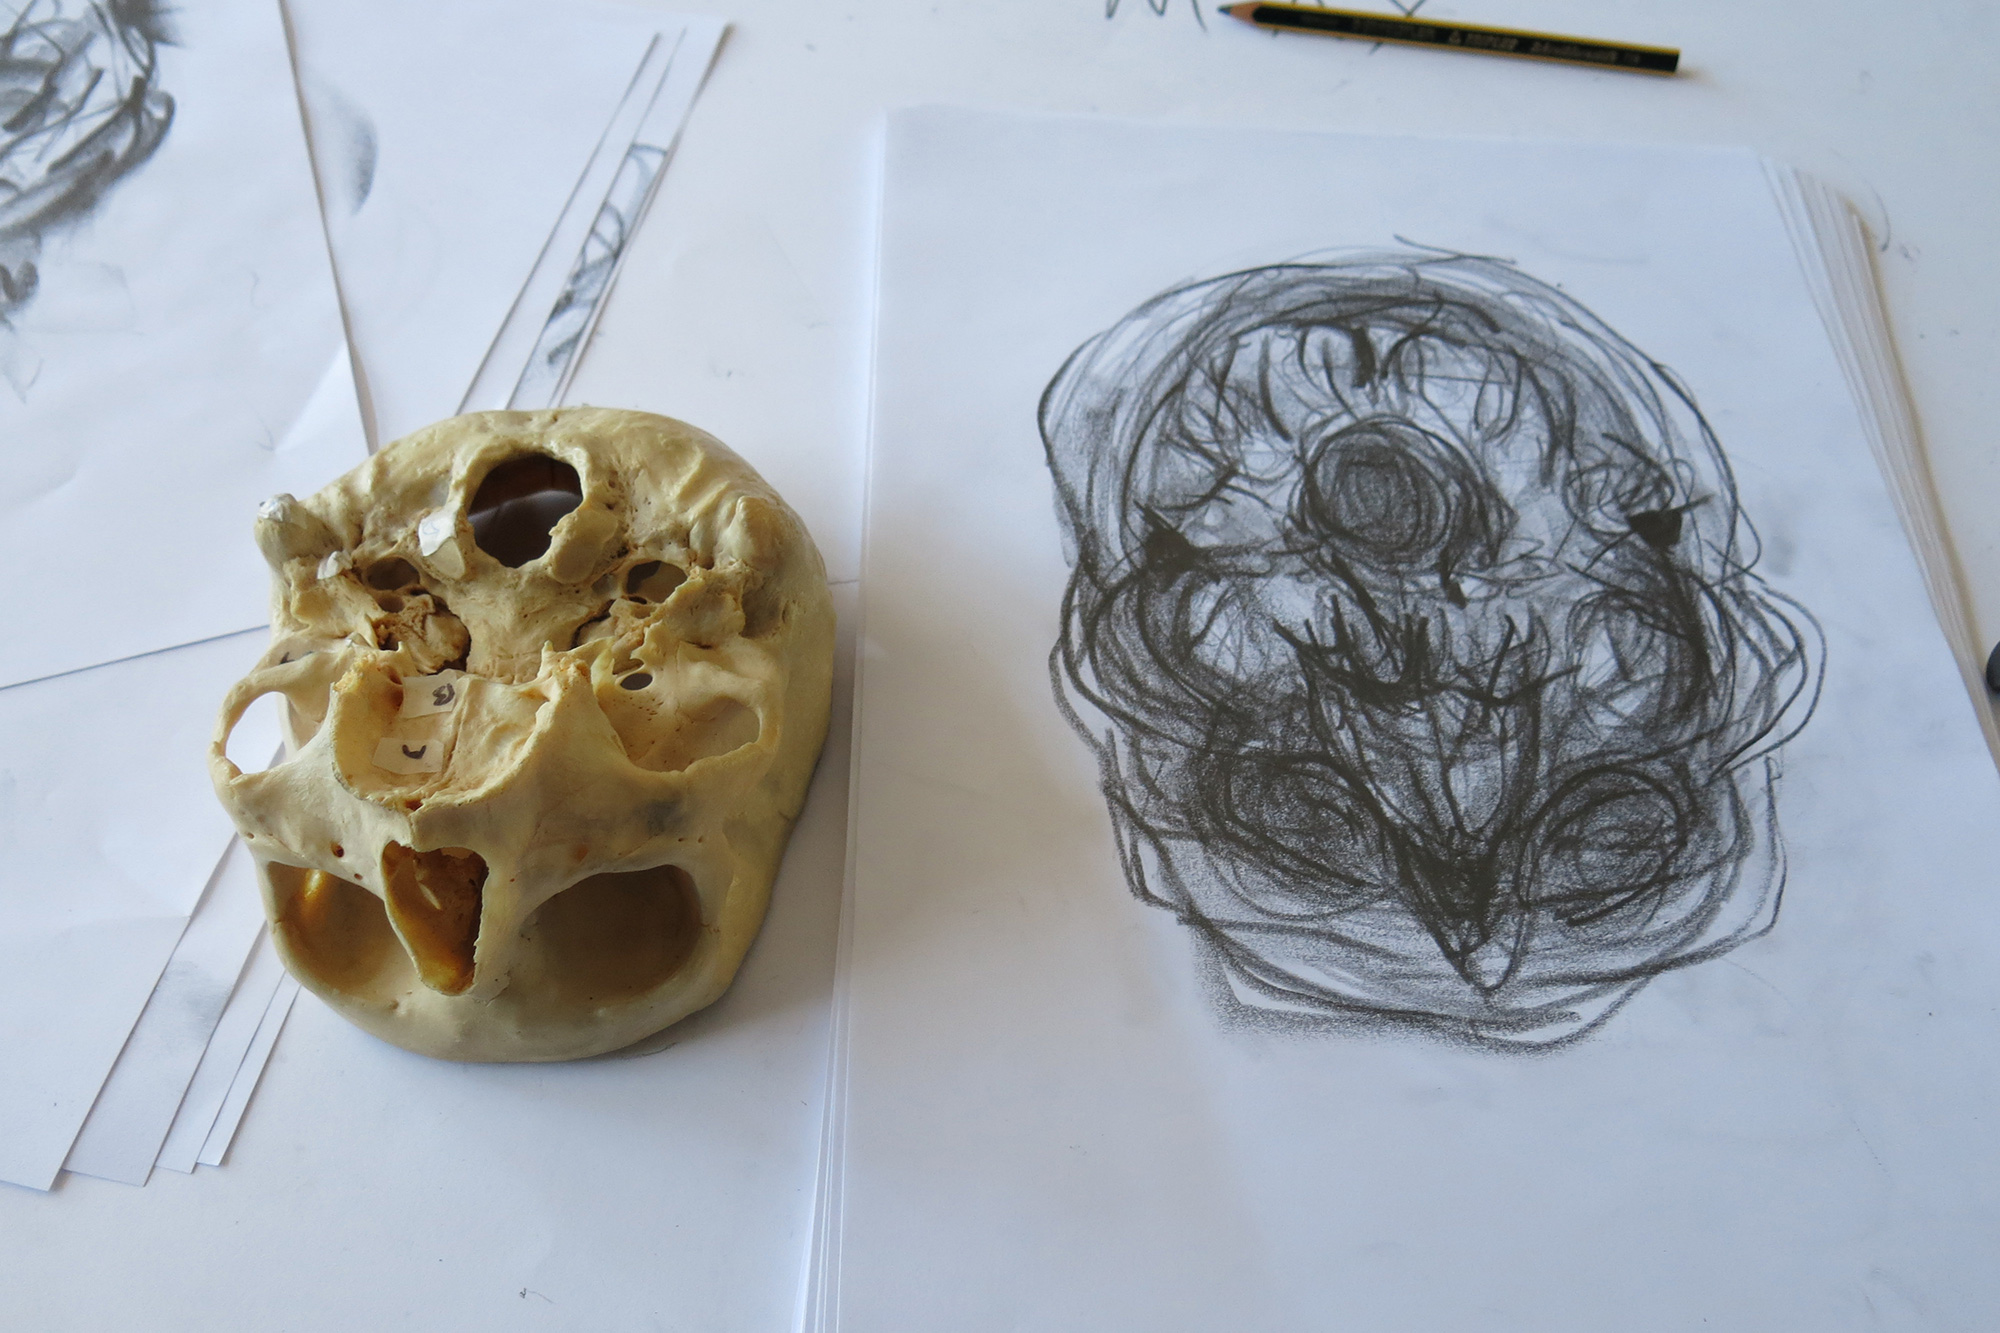 Enhancing The Learning Of Anatomy